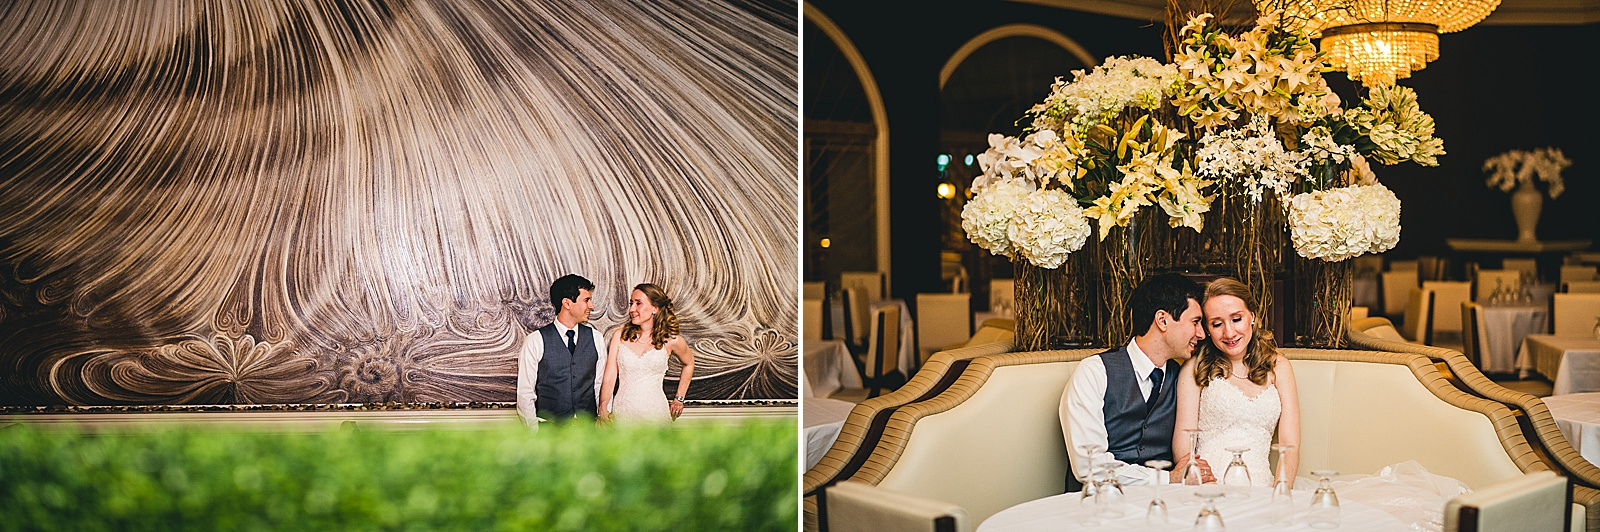 42 end of night portraits - Oakbrook Wedding Photos at Drury Lane // Marina + Joe